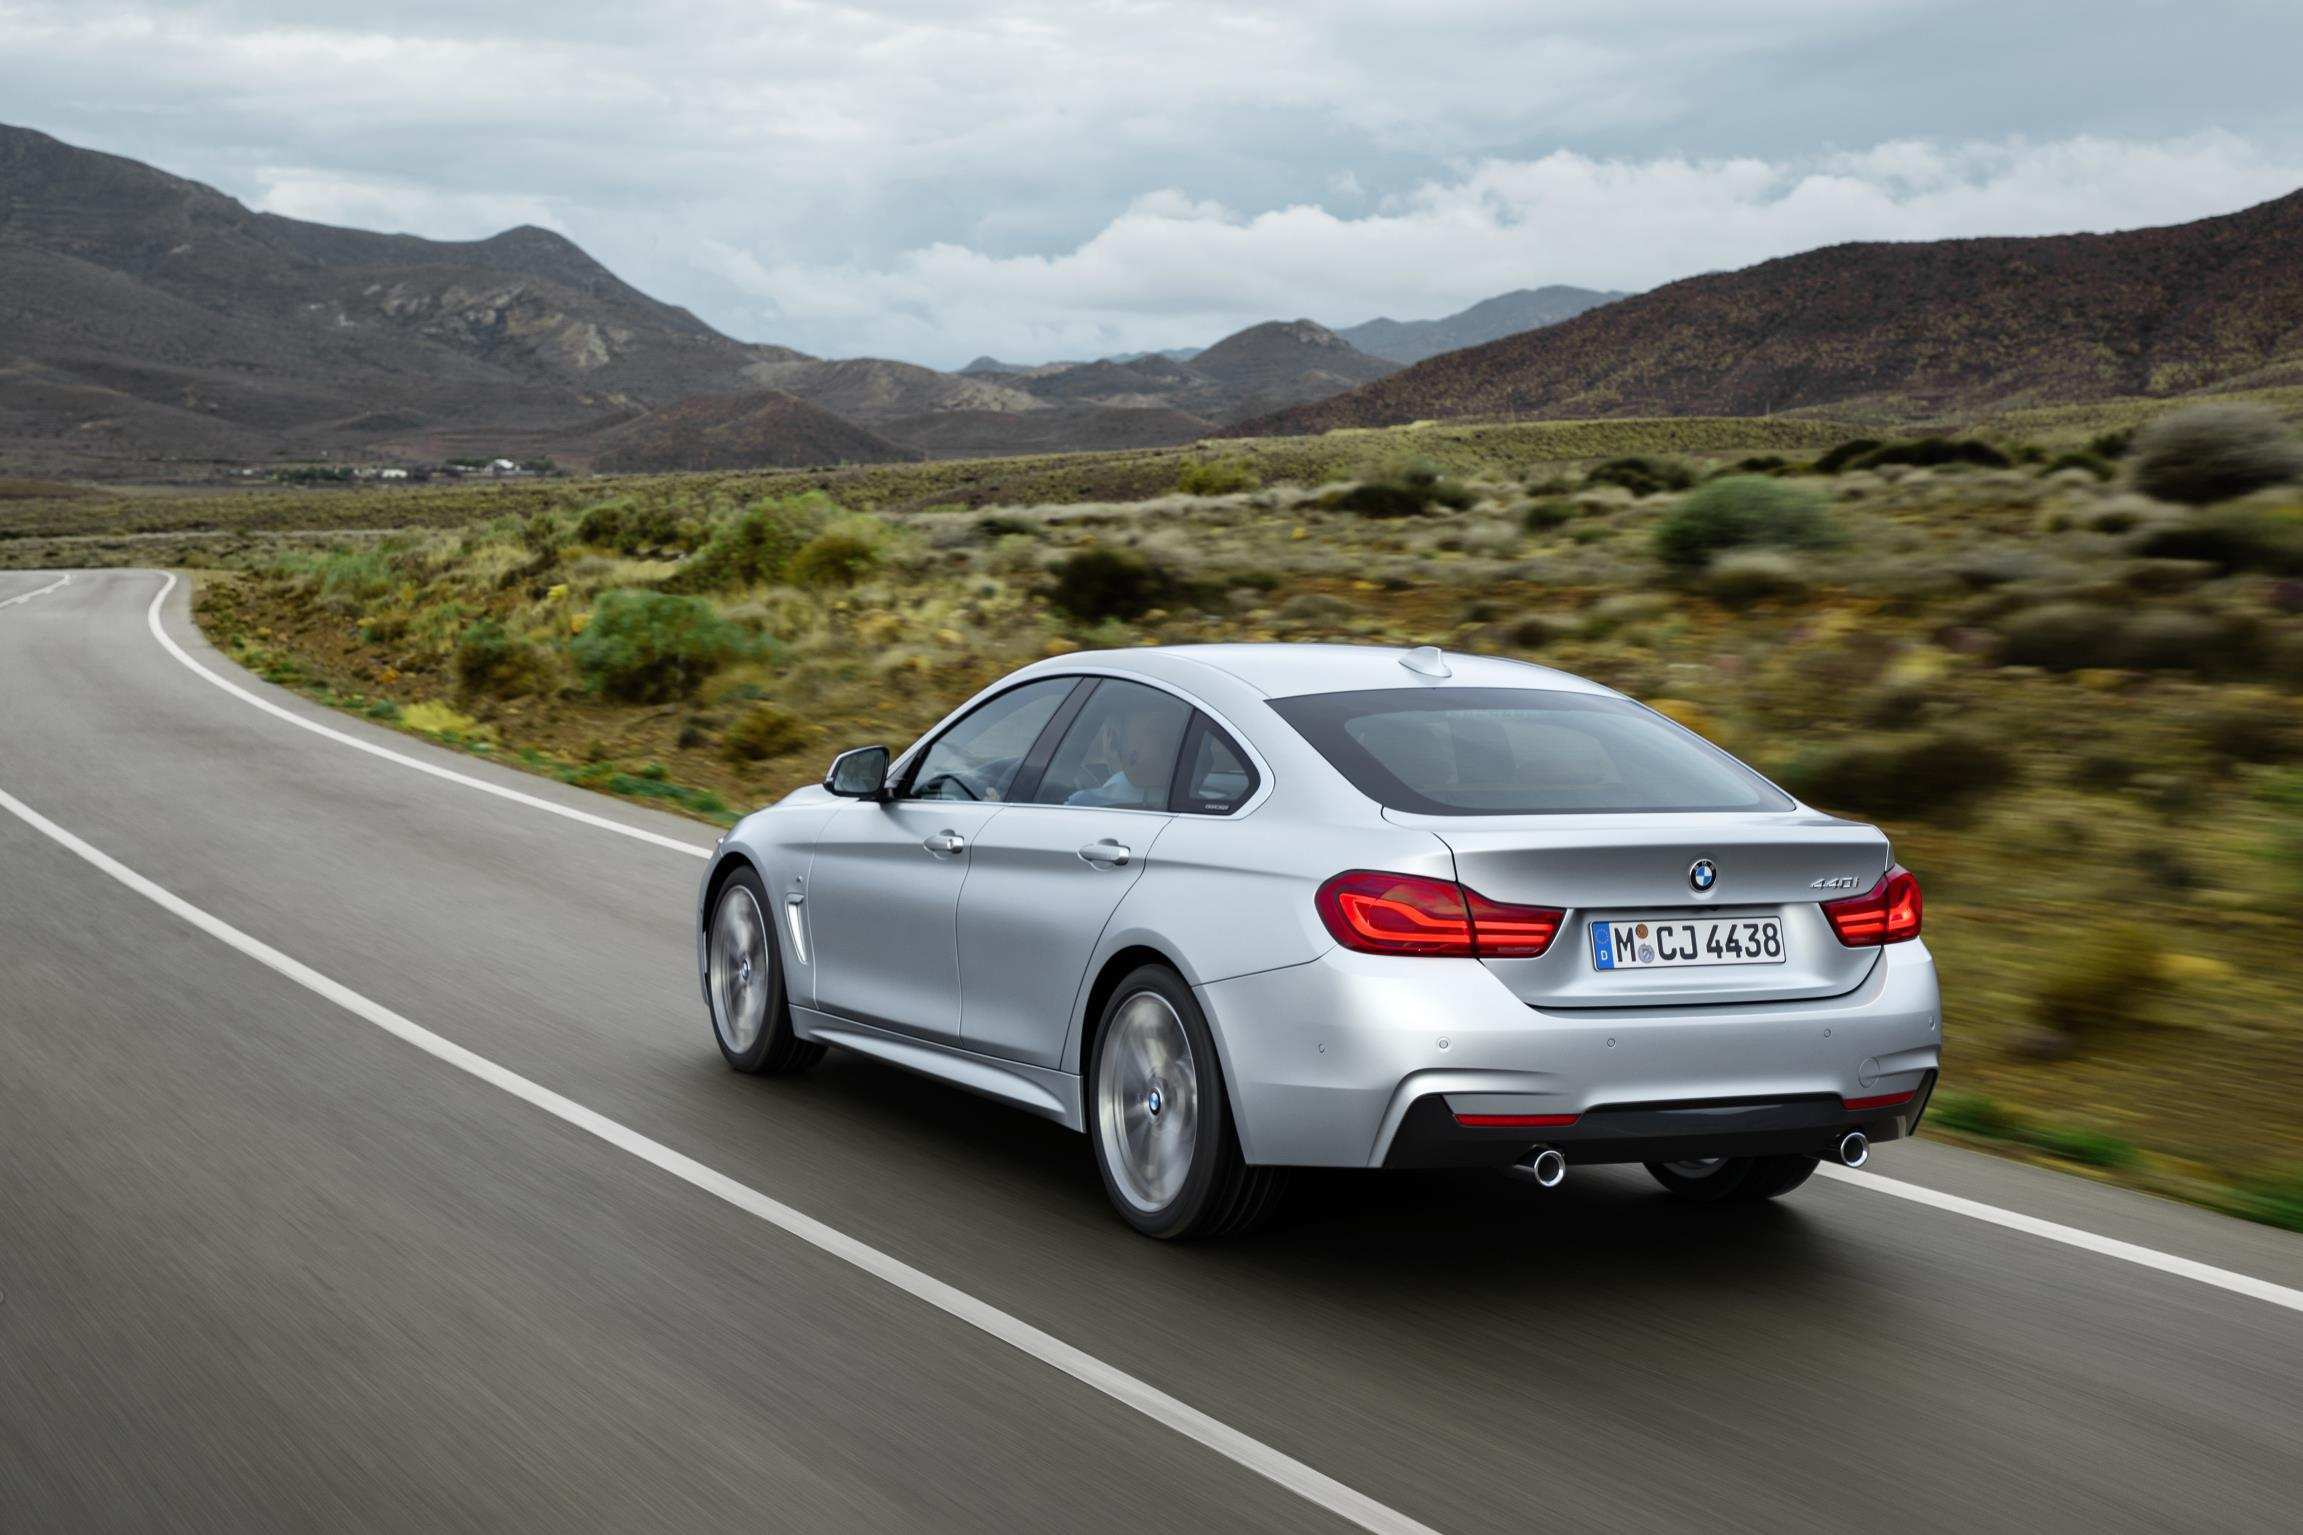 85 Great 2020 Bmw 4 Series Release Date Picture for 2020 Bmw 4 Series Release Date